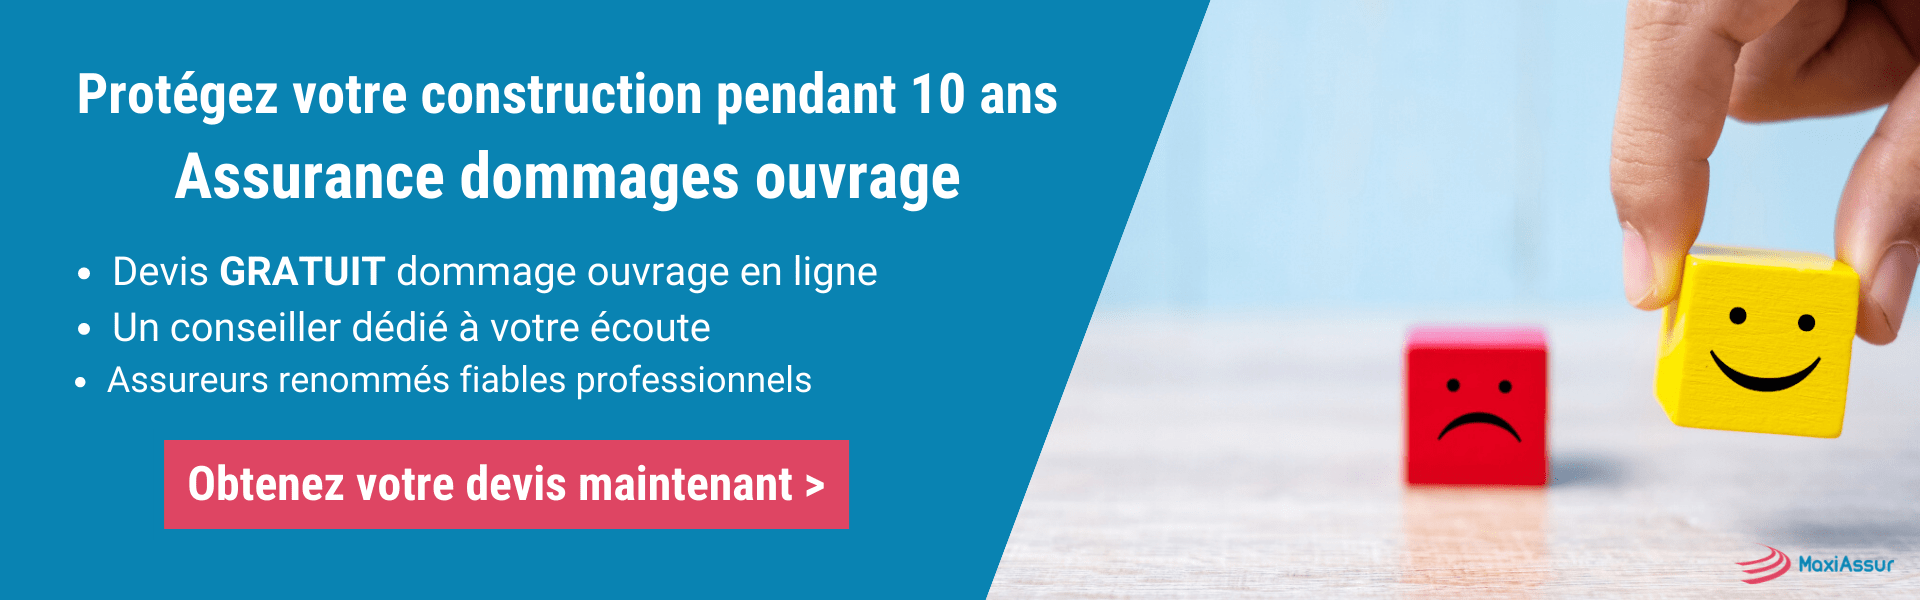 choisir son assurance dommages ouvrage